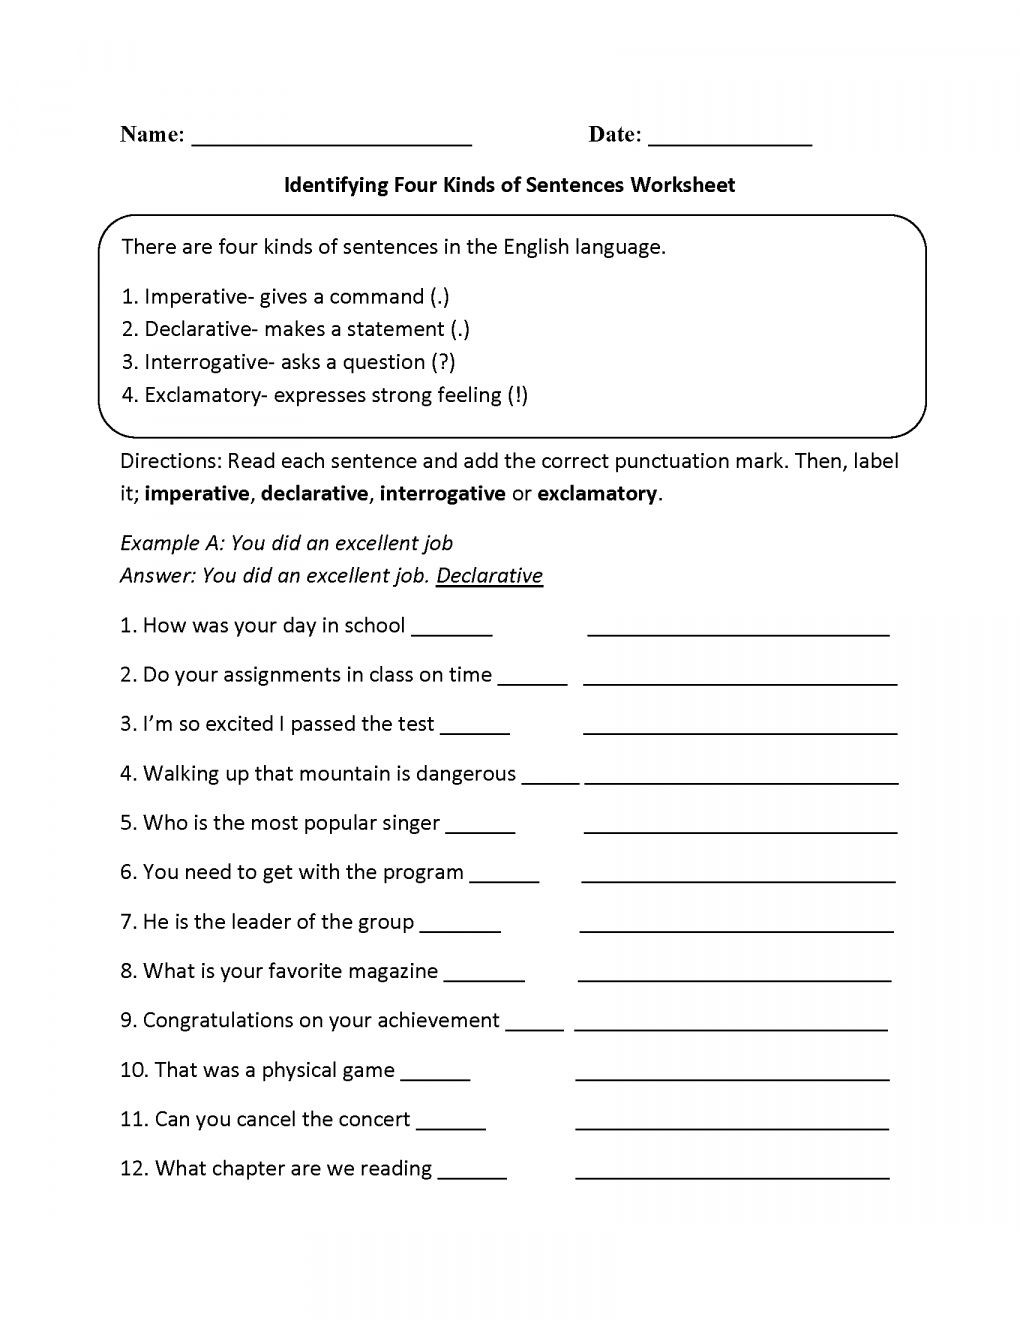 Punctuation Worksheets 5th Grade 12 4 Types Sentences Worksheet 5th Grade Grade